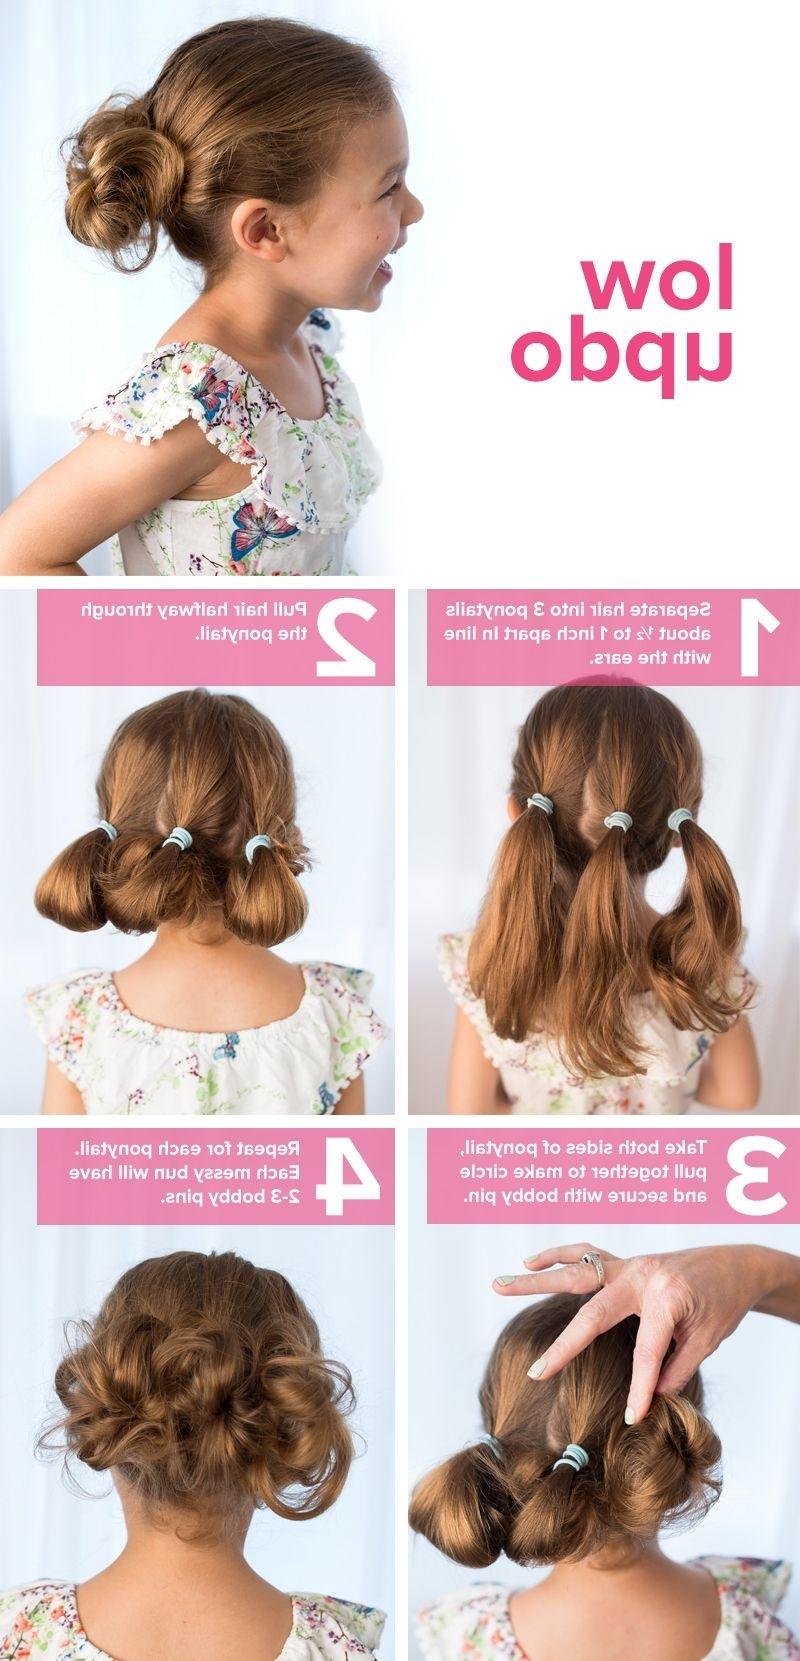 5 Fast, Easy, Cute Hairstyles For Girls | Low Updo, Updo And Kids S In Long Hair Updo Hairstyles For Work (View 8 of 15)